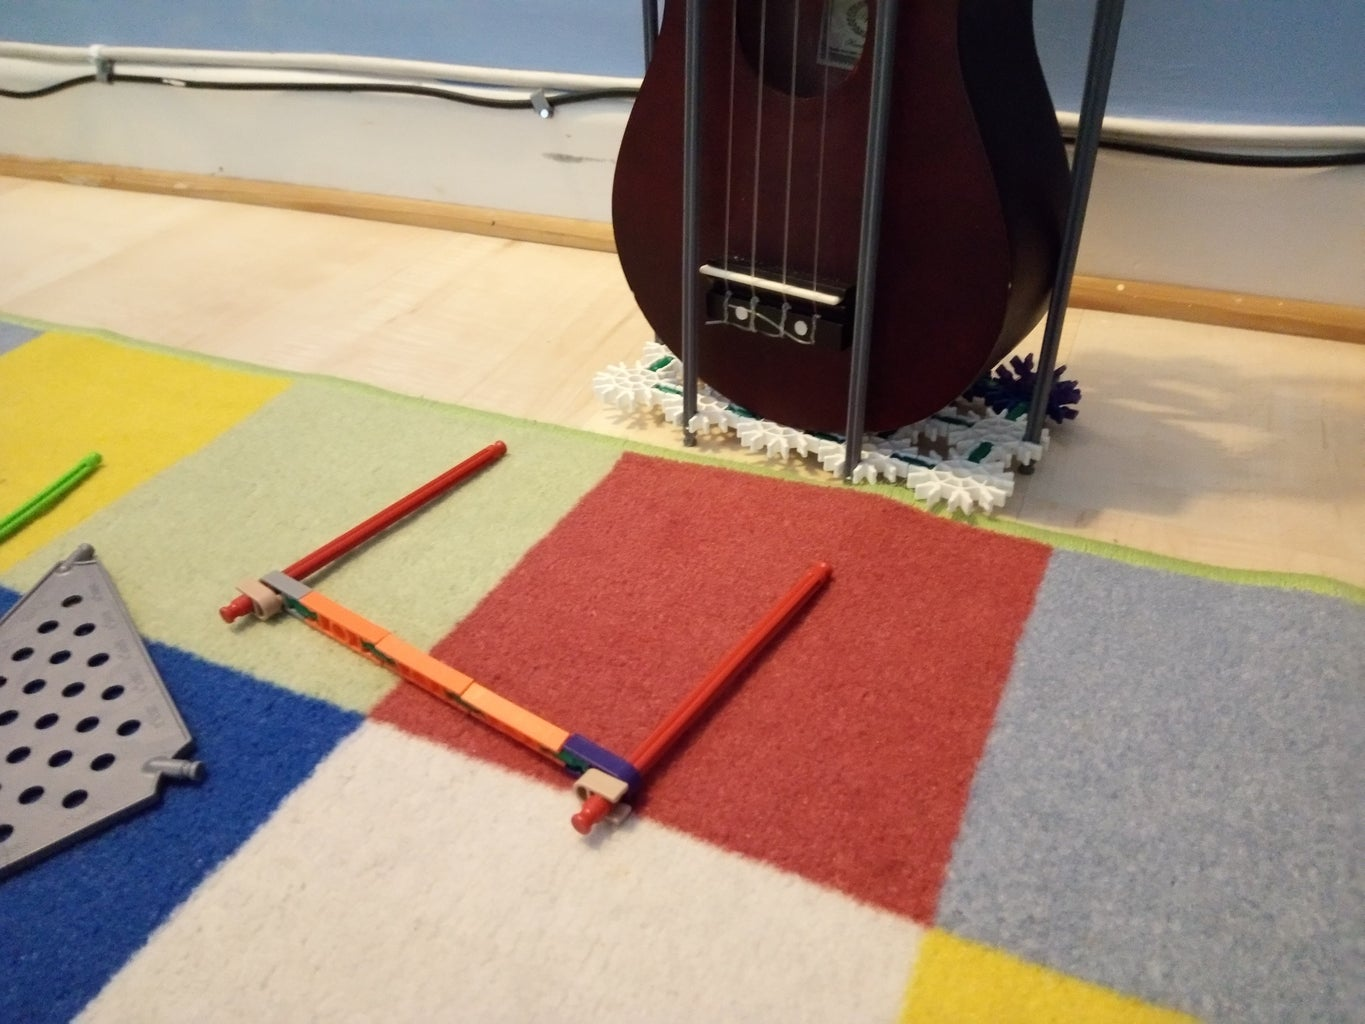 How to Put the Ukulele in the Stand